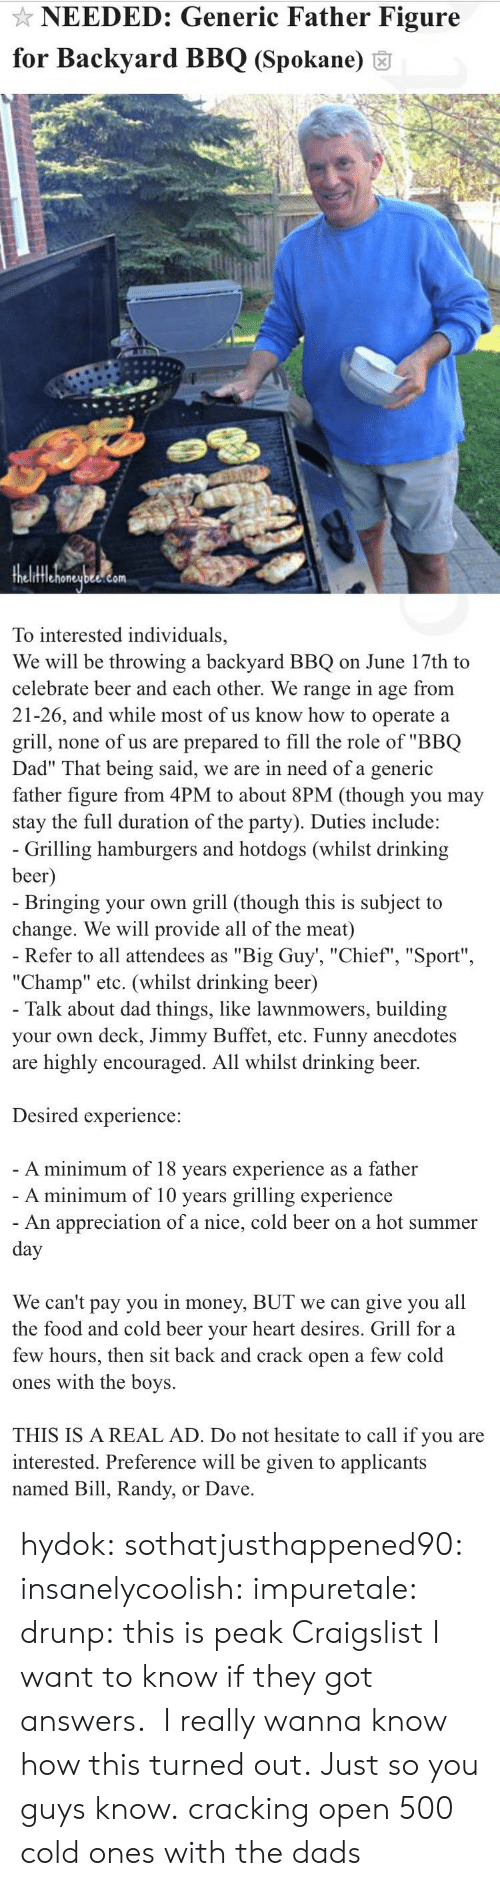 """Craigslist: NEEDED: Generic Father Figure  for Backyard BBQ (Spokane) 6  fflehoneubee.com  To interested individuals,  We will be throwing a backyard BBQ on June 17th to  celebrate beer and each other. We range in age from  21-26, and while most of us know how to operate a  grill, none of us are prepared to fill the role of """"BBQ  Dad"""" That being said, we are in need of a generic  father figure from 4PM to about 8PM (though you may  stay the full duration of the party). Duties include:   Grilling hamburgers and hotdogs (whilst drinking  beer  Bringing your own grill (though this is subject to  change. We will provide all of the meat)  Refer to all attendees as """"Big Guy', """"Chief"""", """"Sport""""  """"Champ"""" etc. (whilst drinking beer)  Talk about dad things, like lawnmowers, building  your own deck, Jimmy Buffet, etc. Funny anecdotes  are highly encouraged. All whilst drinking beer.  Desired experience:  A minimum of 18 vears experience as a father  A minimum of 10 years grilling experience  An appreciation of a nice, cold beer on a hot summer  We can't pay you in money, BUT we can give you all  the food and cold beer vour heart desires. Grill for a  few hours, then sit back and crack open a few cold  ones with the boys.  THIS IS A REAL AD. Do not hesitate to call if you are  interested. Preference will be given to applicants  named Bill, Randy, or Dave hydok: sothatjusthappened90:  insanelycoolish:   impuretale:  drunp: this is peak Craigslist I want to know if they got answers.  I really wanna know how this turned out.               Just so you guys know.  cracking open 500 cold ones with the dads"""